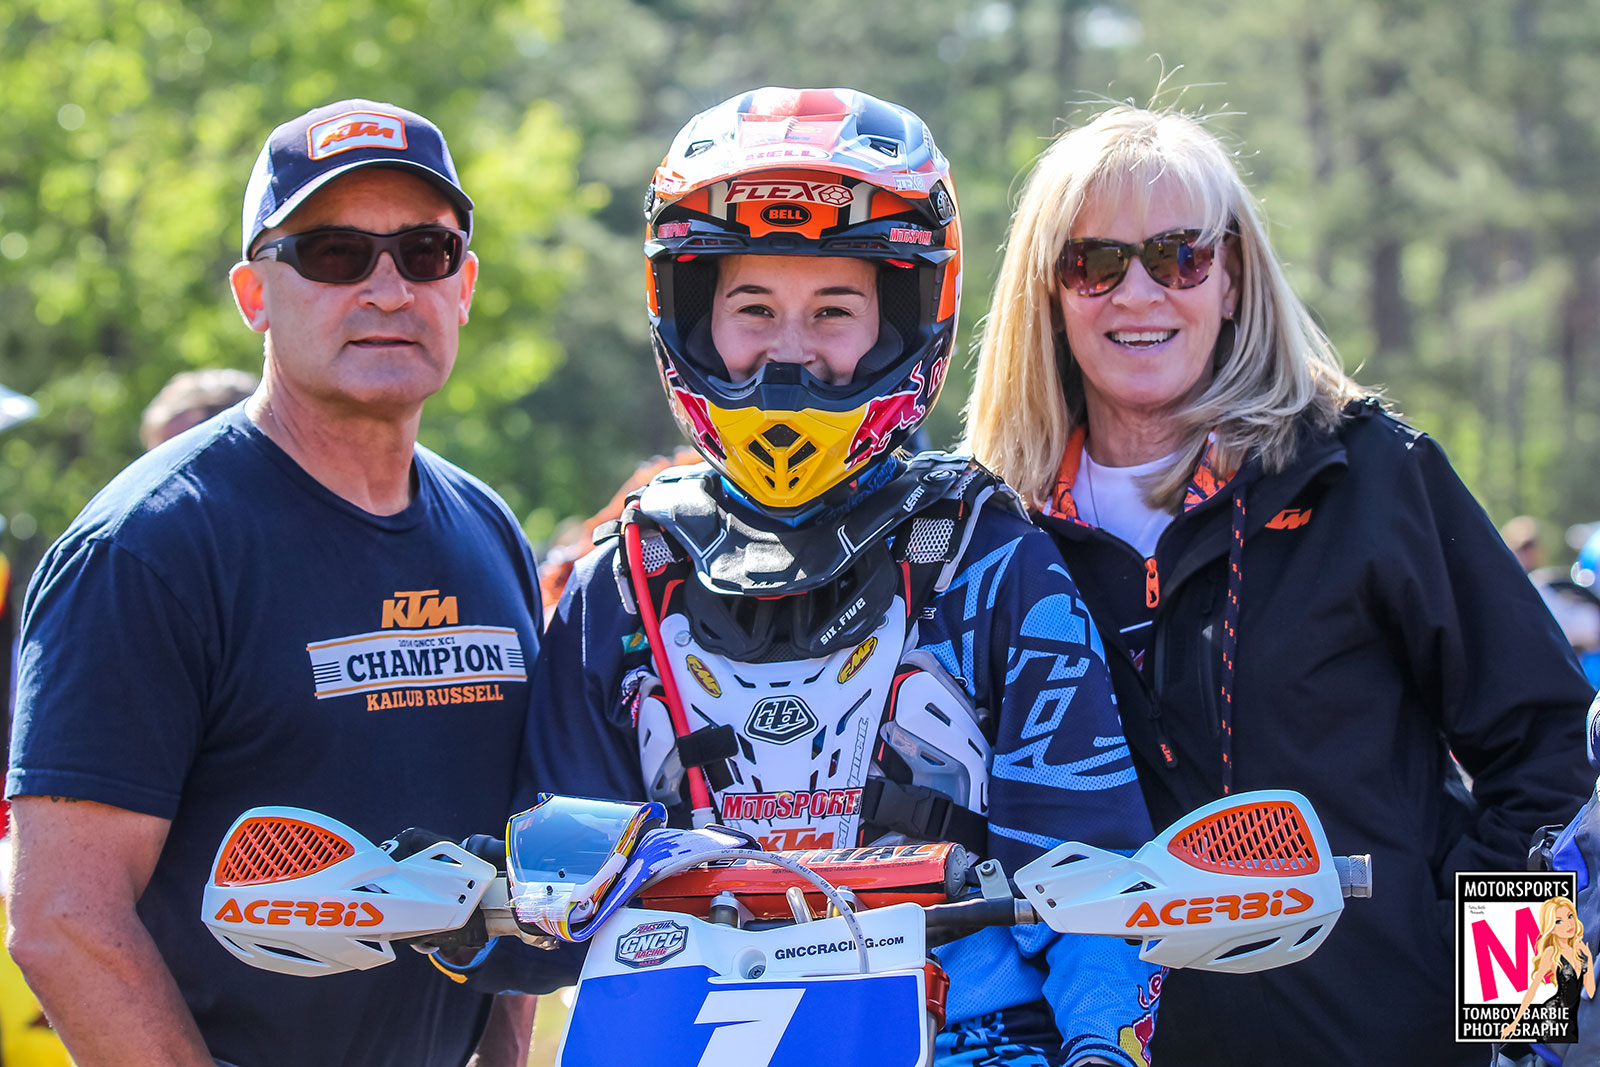 Continued support and guidance from her family and husband have helped Martinez achieve her goals throughout the years. Photo: Tomboy Barbie Photography.